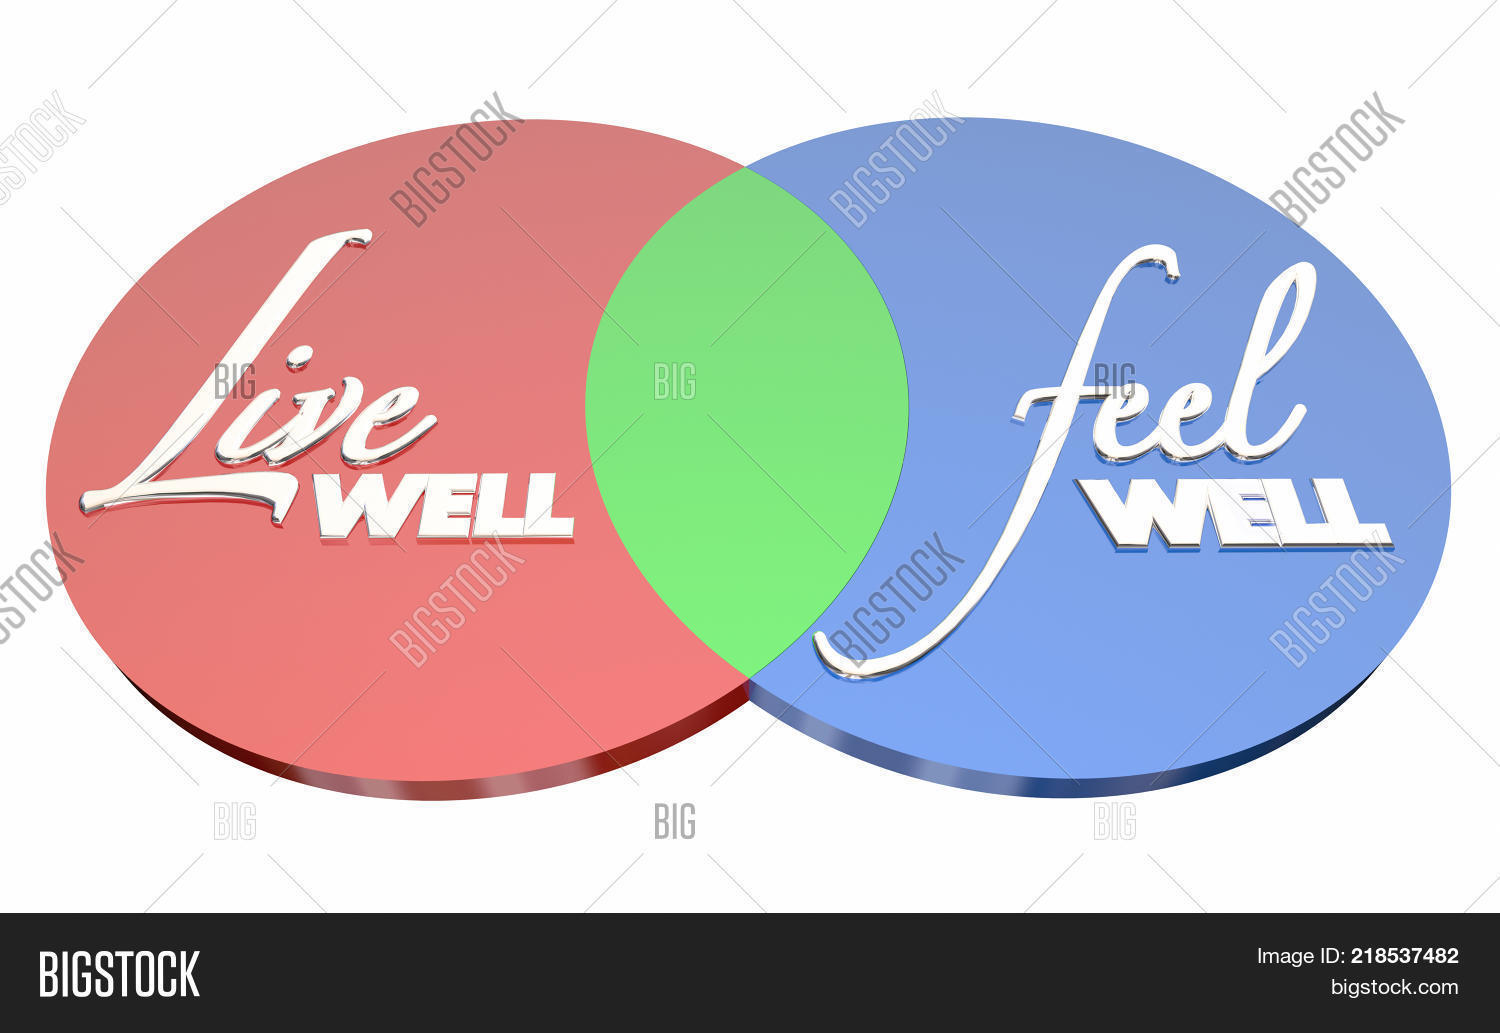 hight resolution of live well feel well healthy lifestyle venn diagram 3d illustration